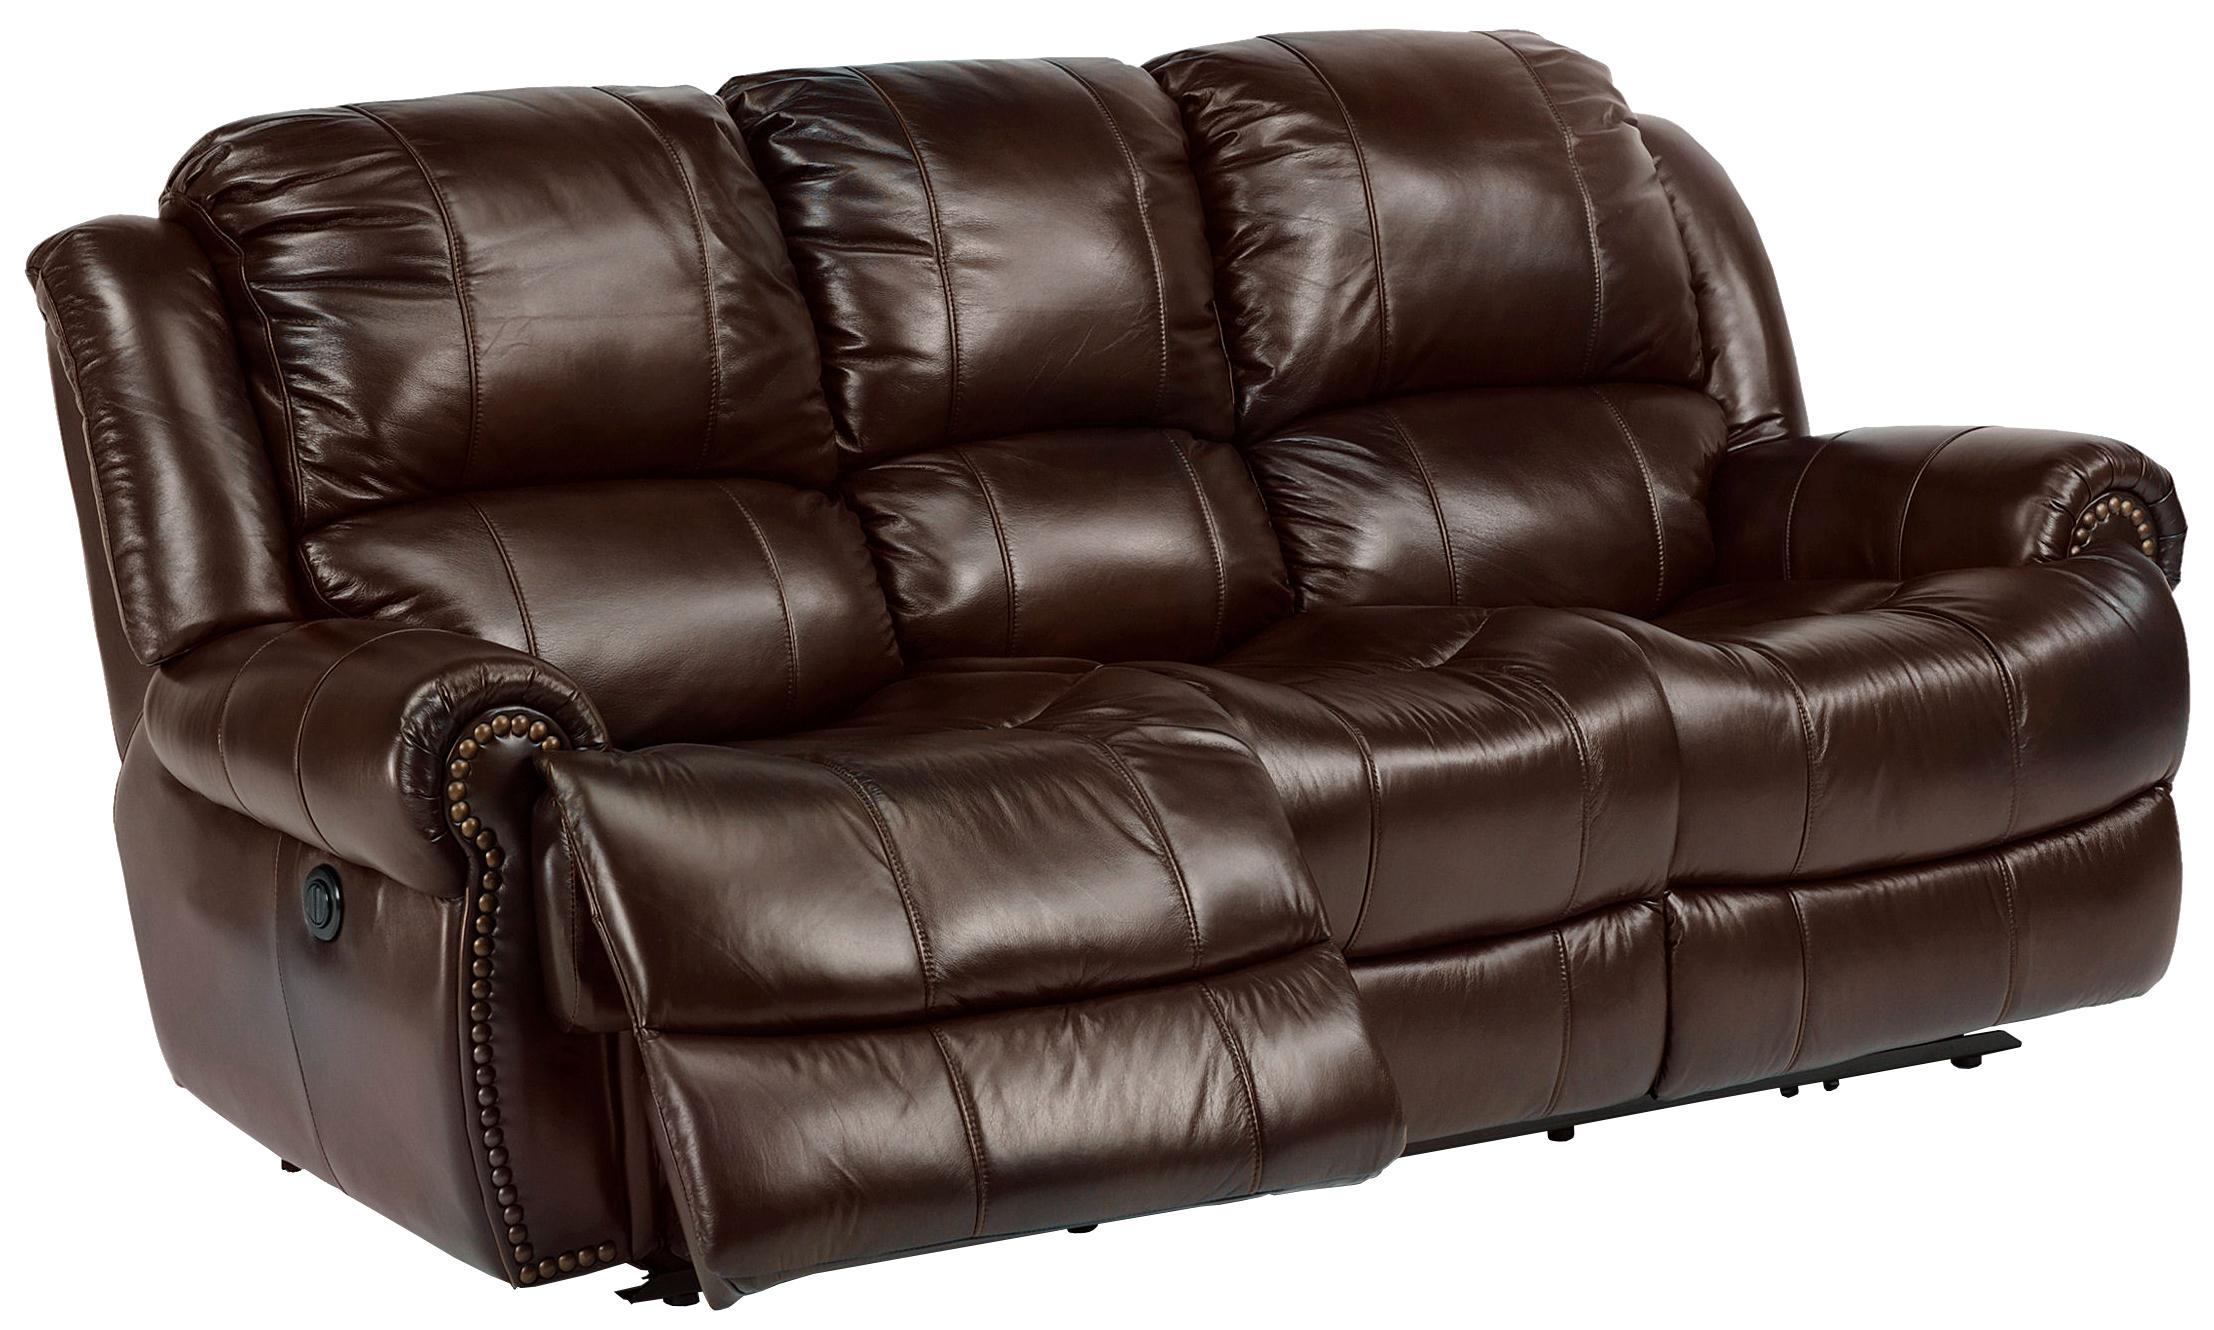 Flexsteel Latitudes - Capitol Power Reclining Sofa - Item Number: 1311-62P